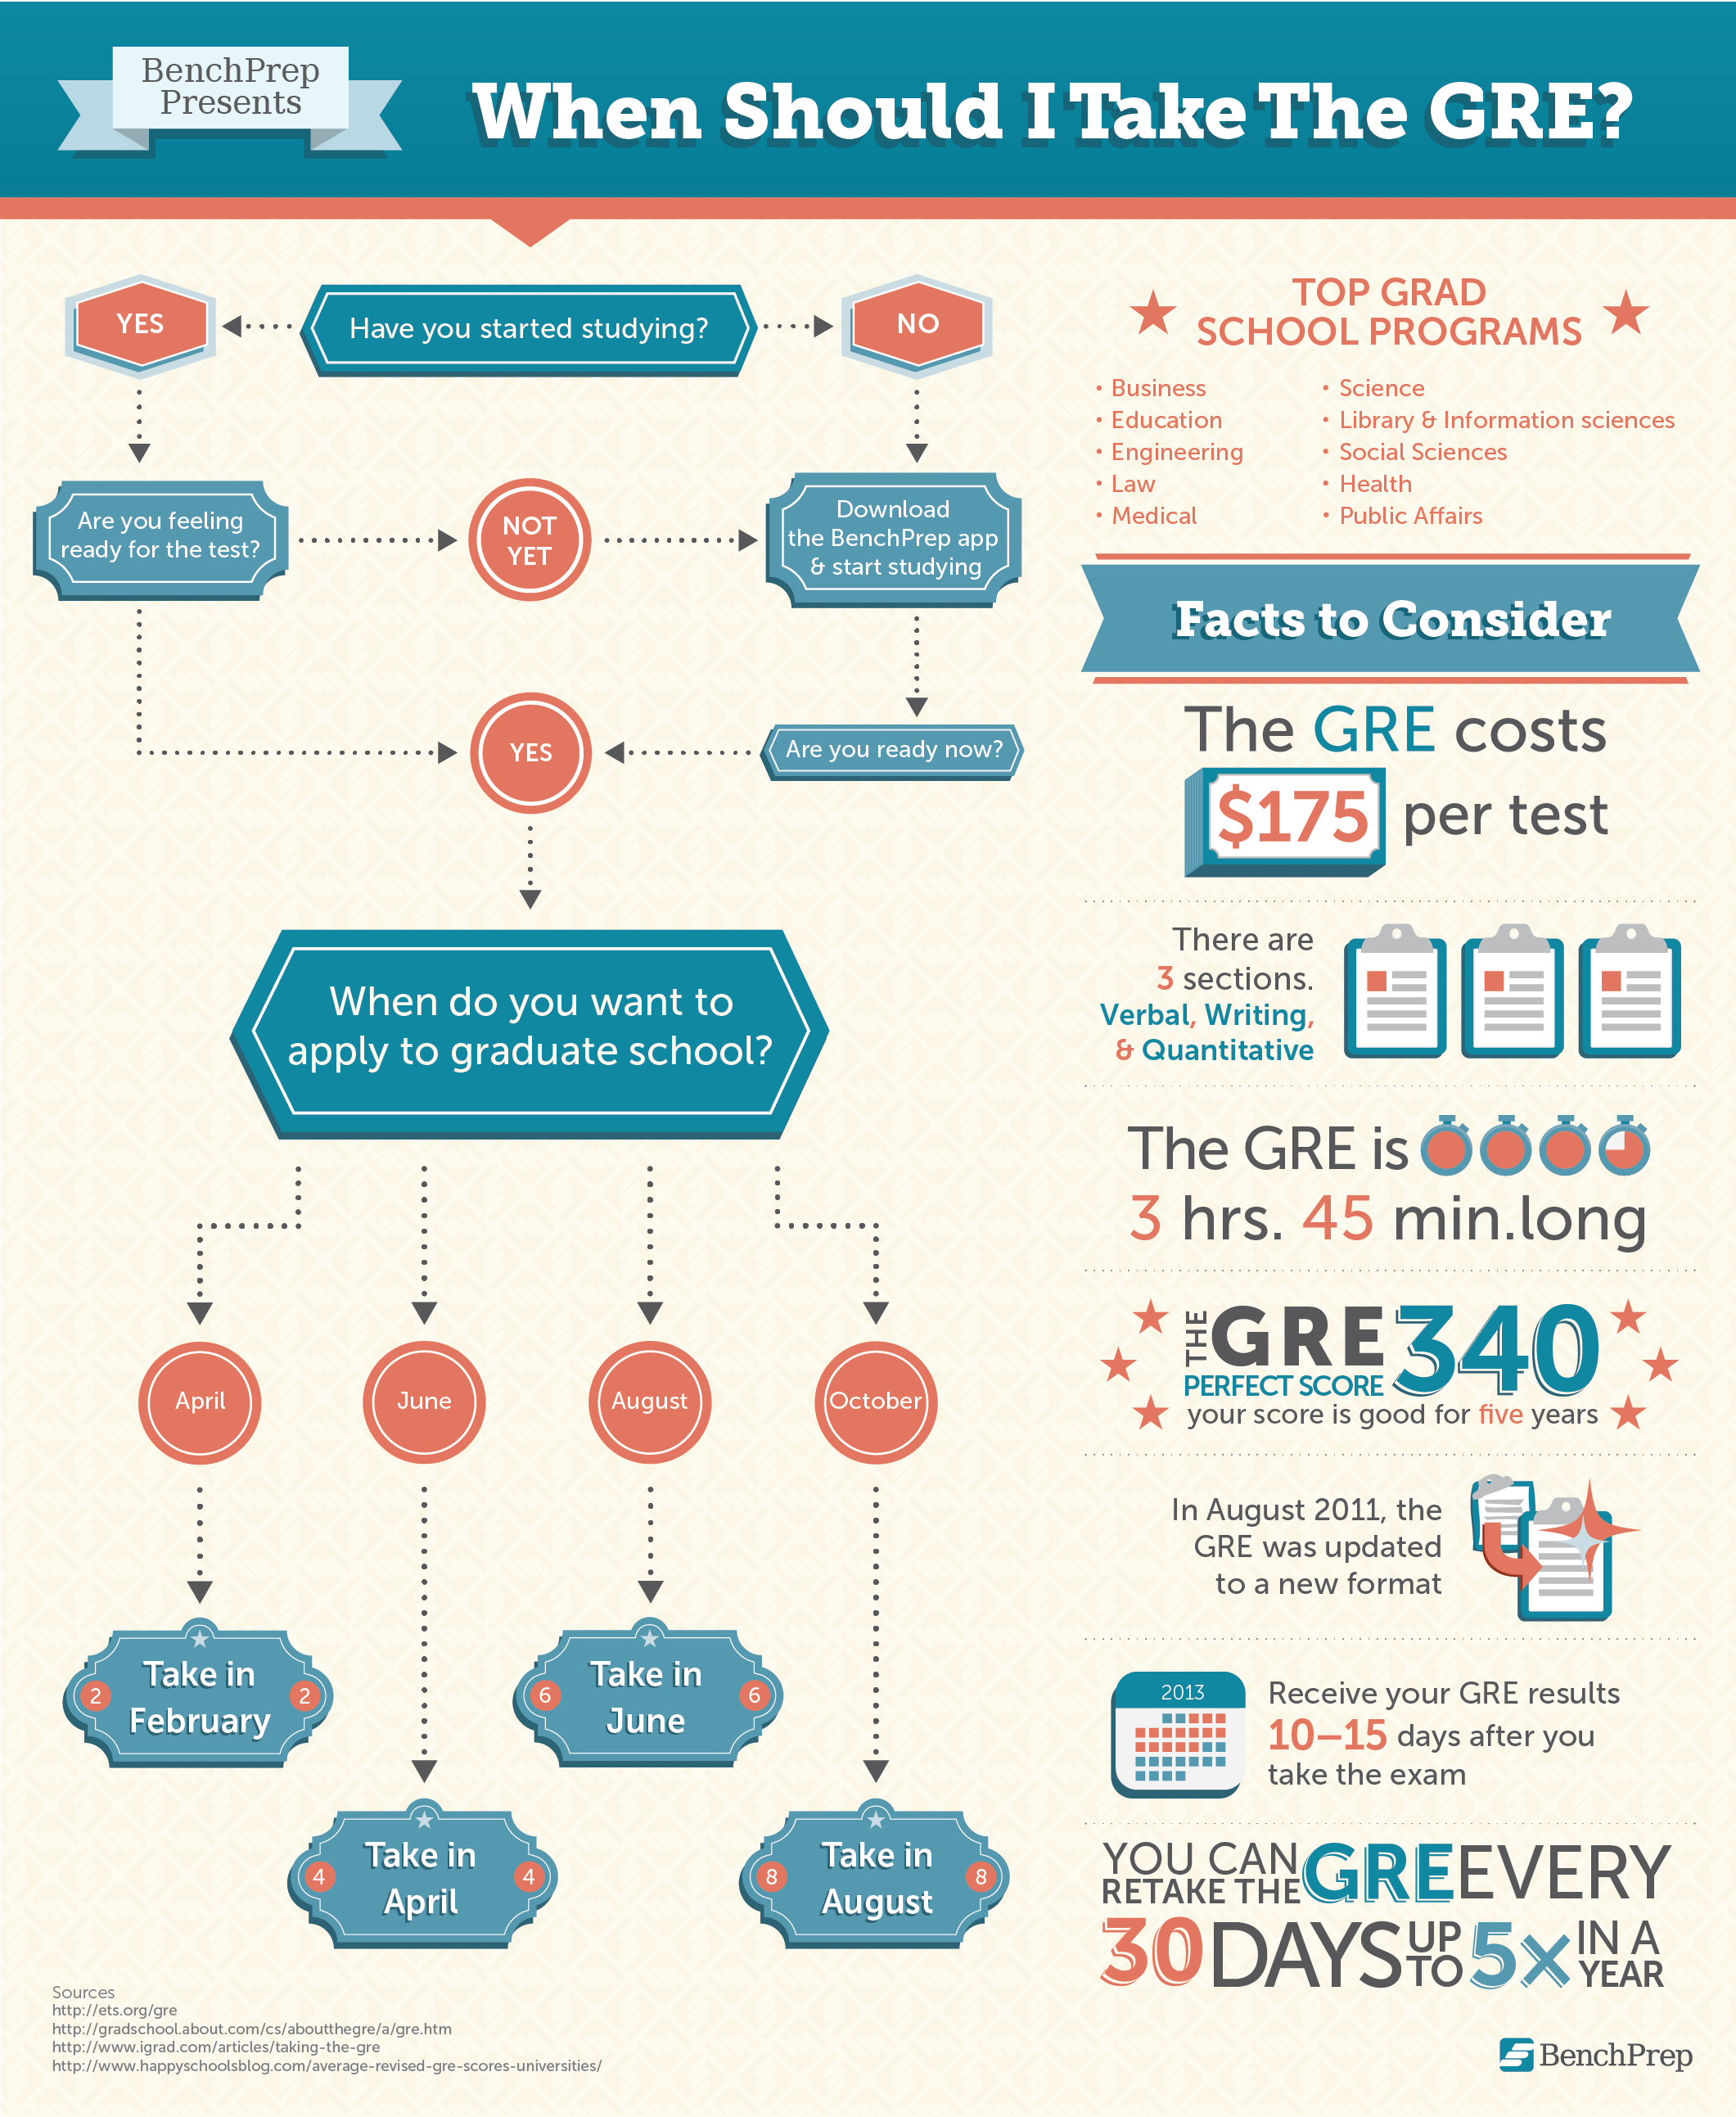 When Should I Take The Gre Good To Know If You Re Planning To Apply To Grad School In The Next